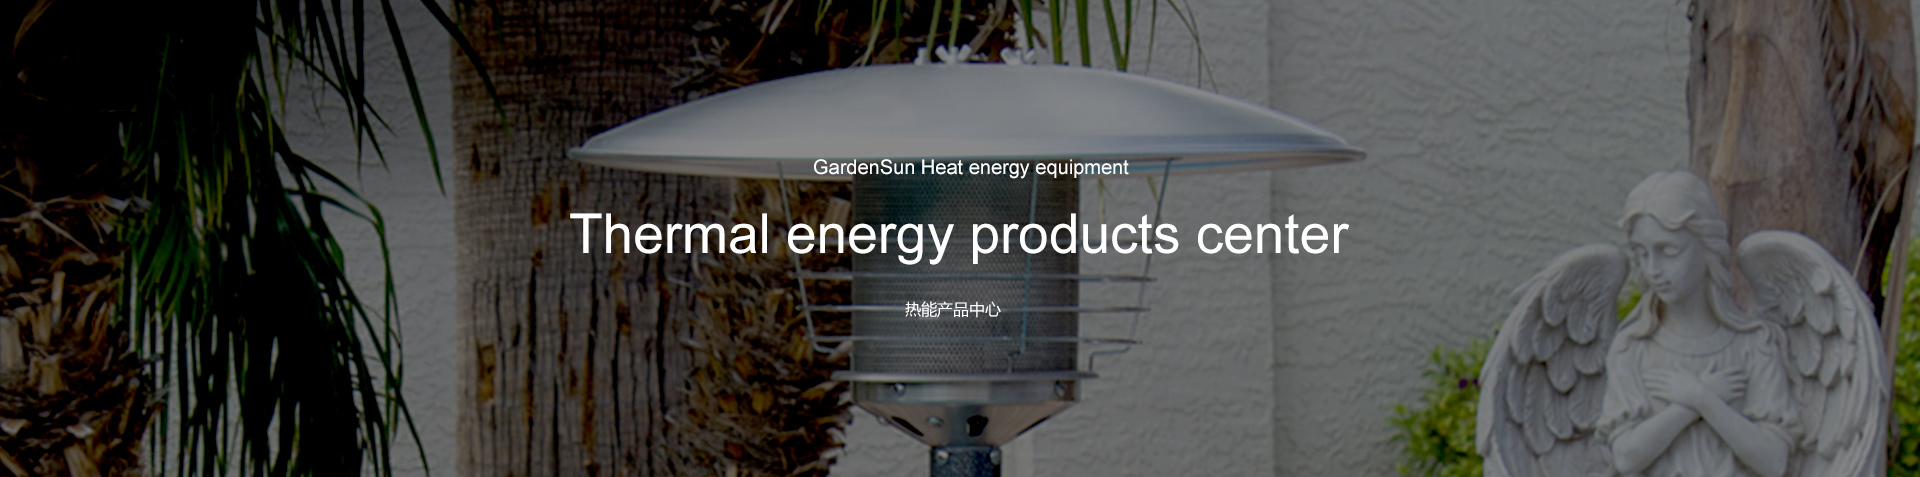 Hss A Ss Portable Patio Heater Gardensun